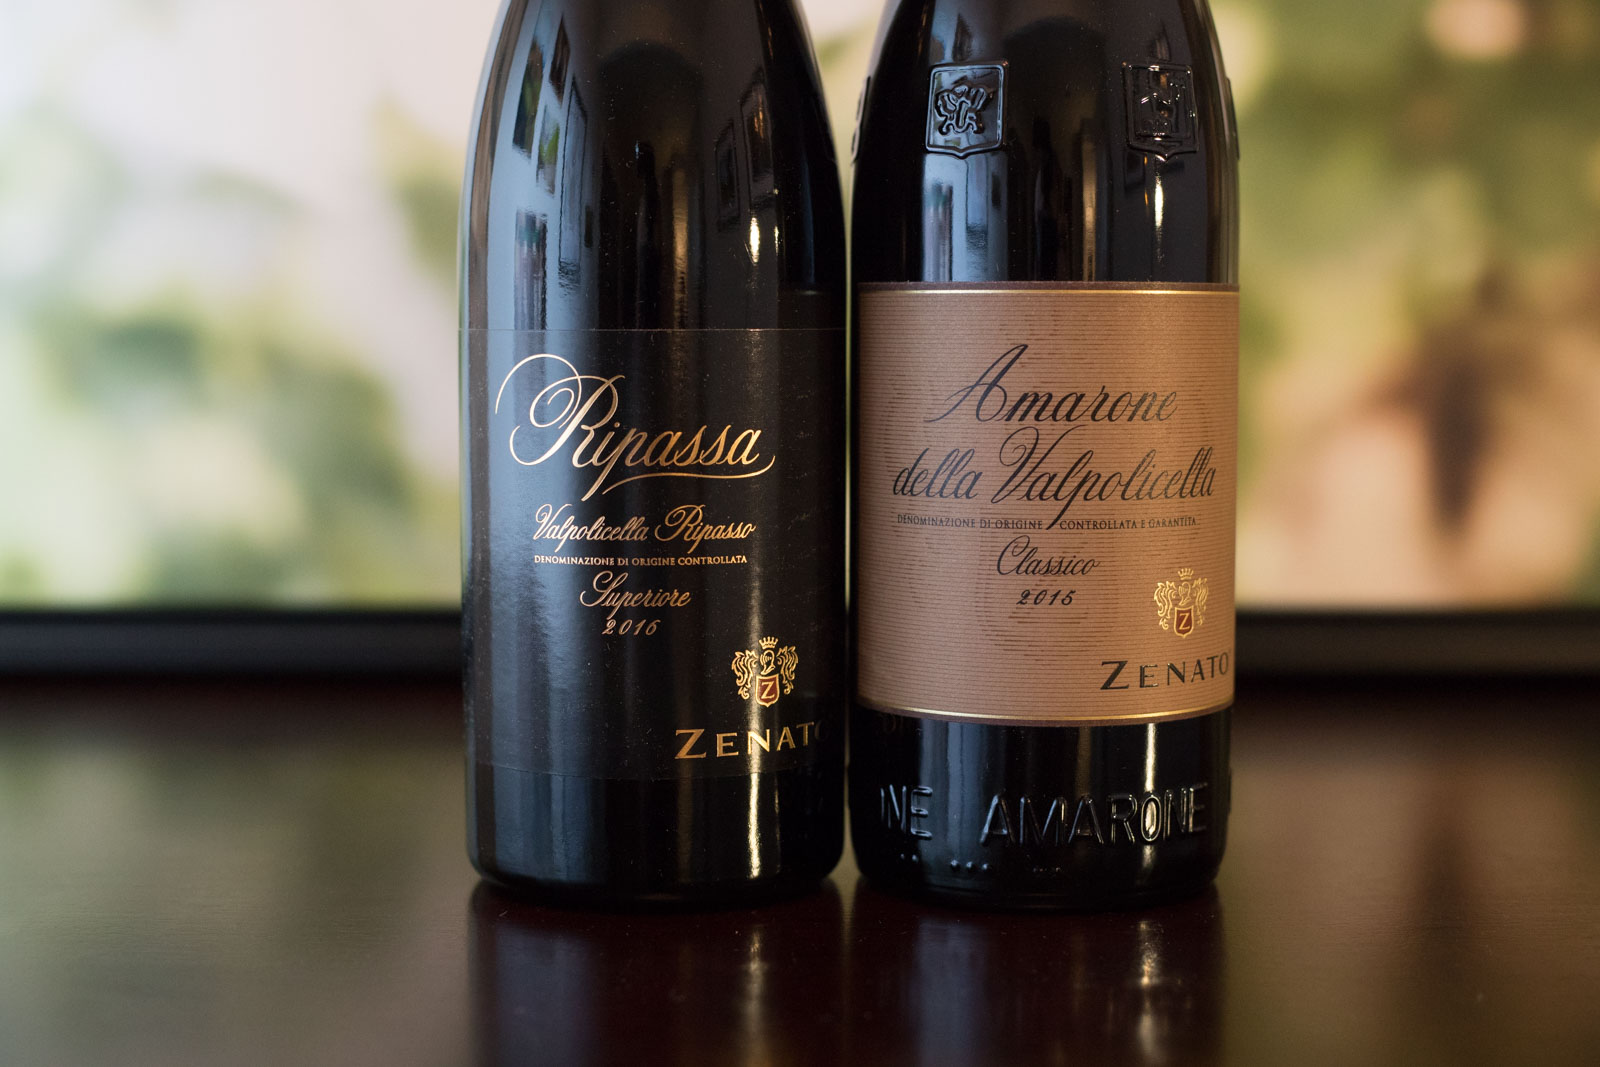 The wines of Zenato. ©Kevin Day/Opening a Bottle